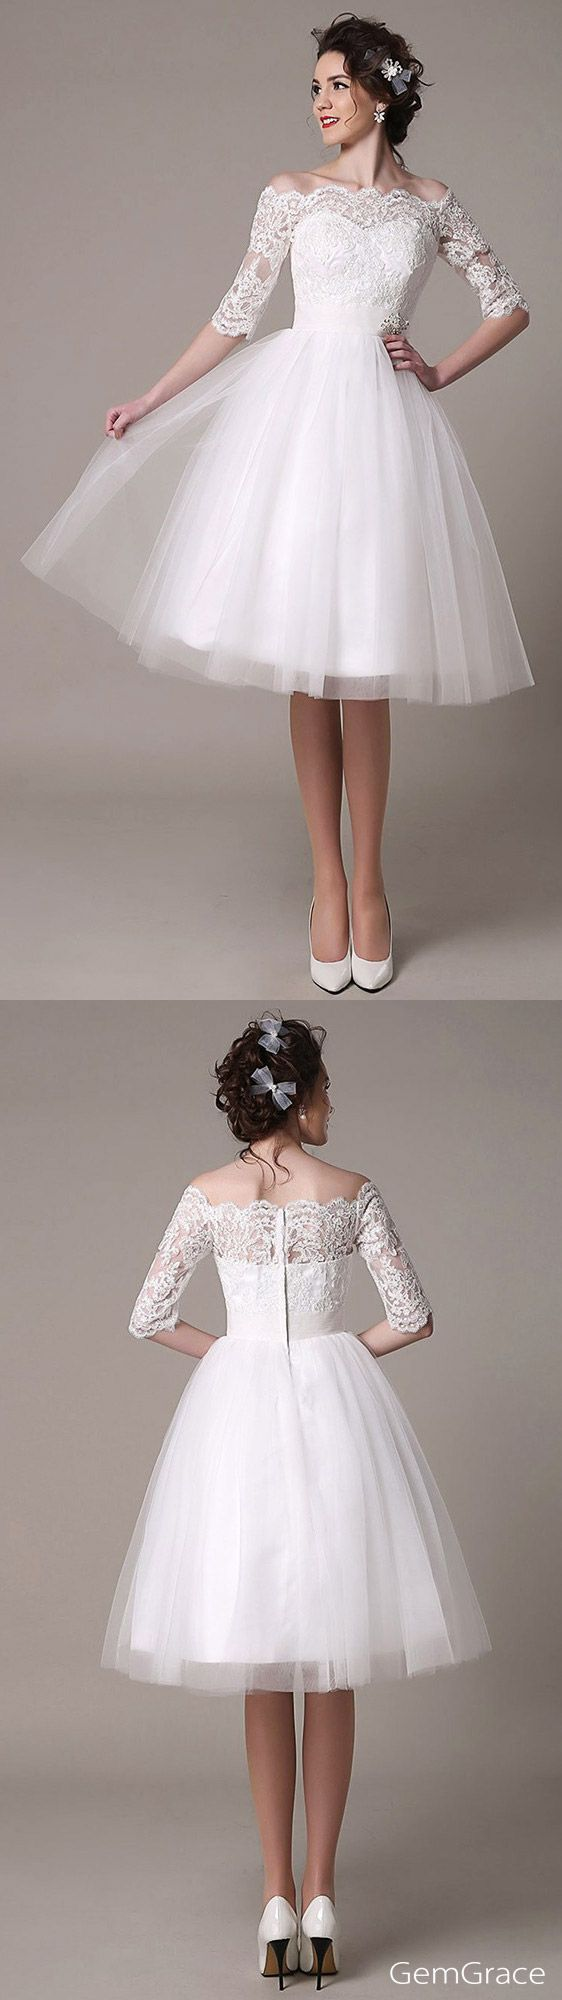 Vintage short wedding dress. I love Vintage! This beautiful knee length wedding dress is made with tulle and unique lace. One elegant half sleeved lace style for summer weddings. Unique Vow renewal dress, mature brides wedding dress, reception dress, dress for bridal shower… For comfy wearing, custom it for your size. (Bodice) – Olga Lengyel